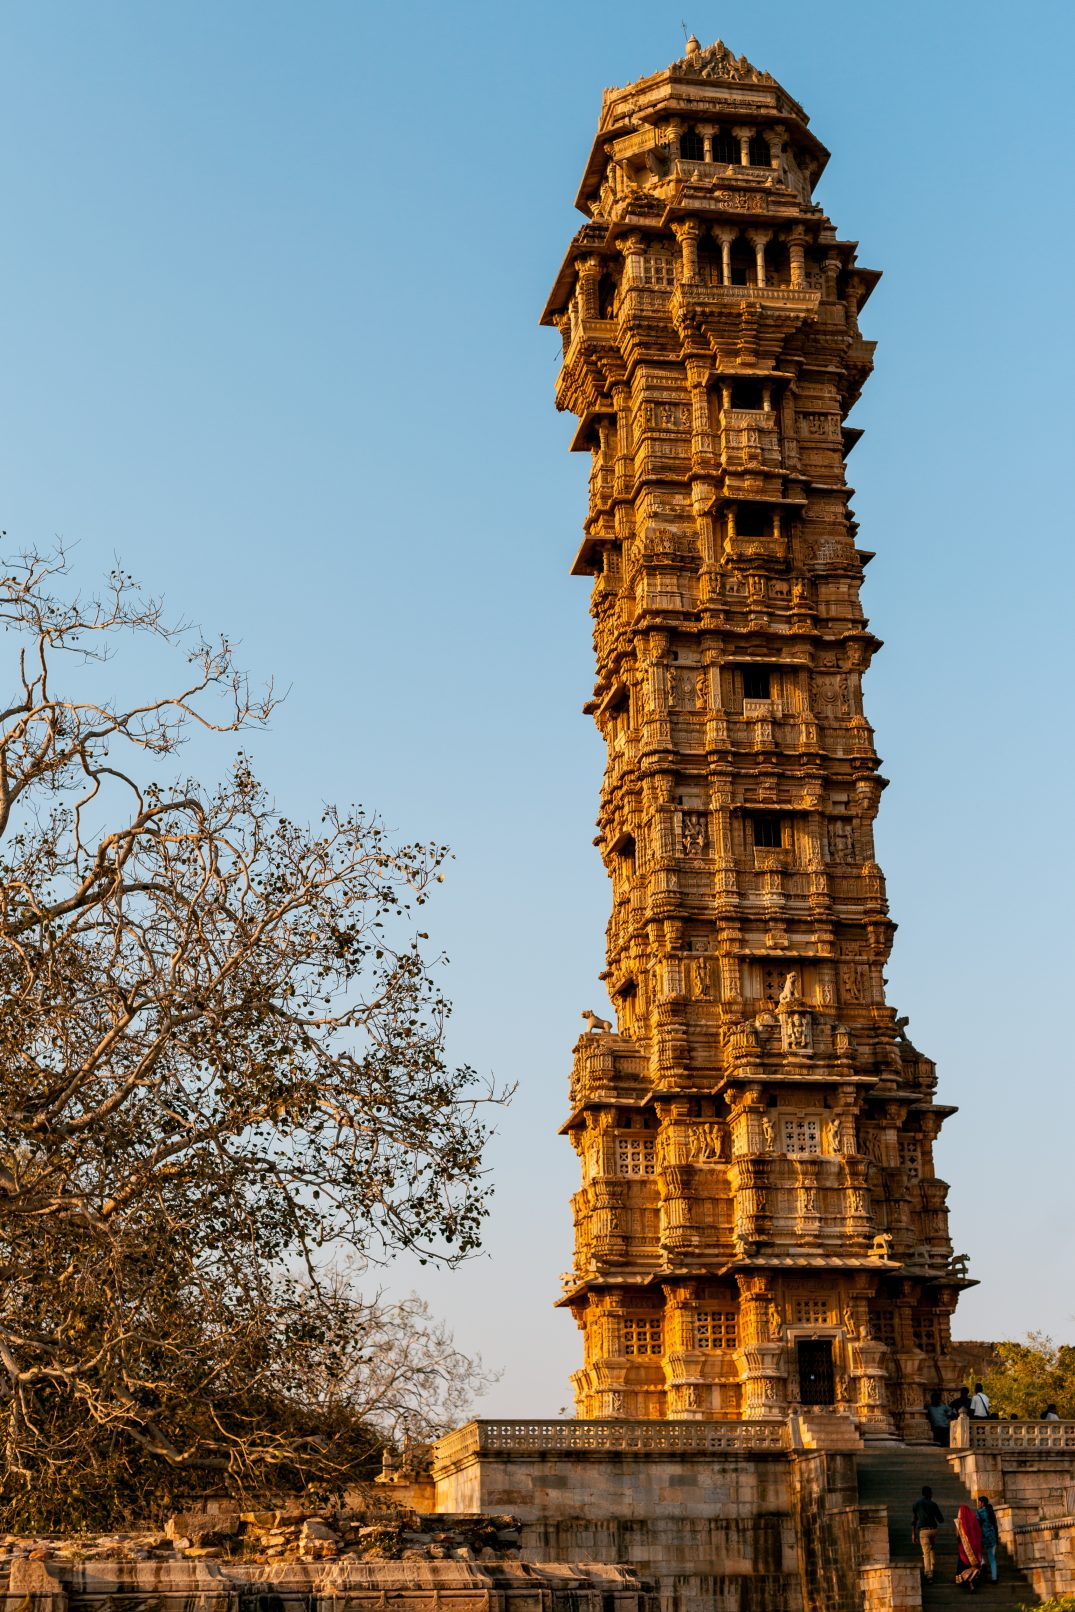 The victory tower of Chittorgarh